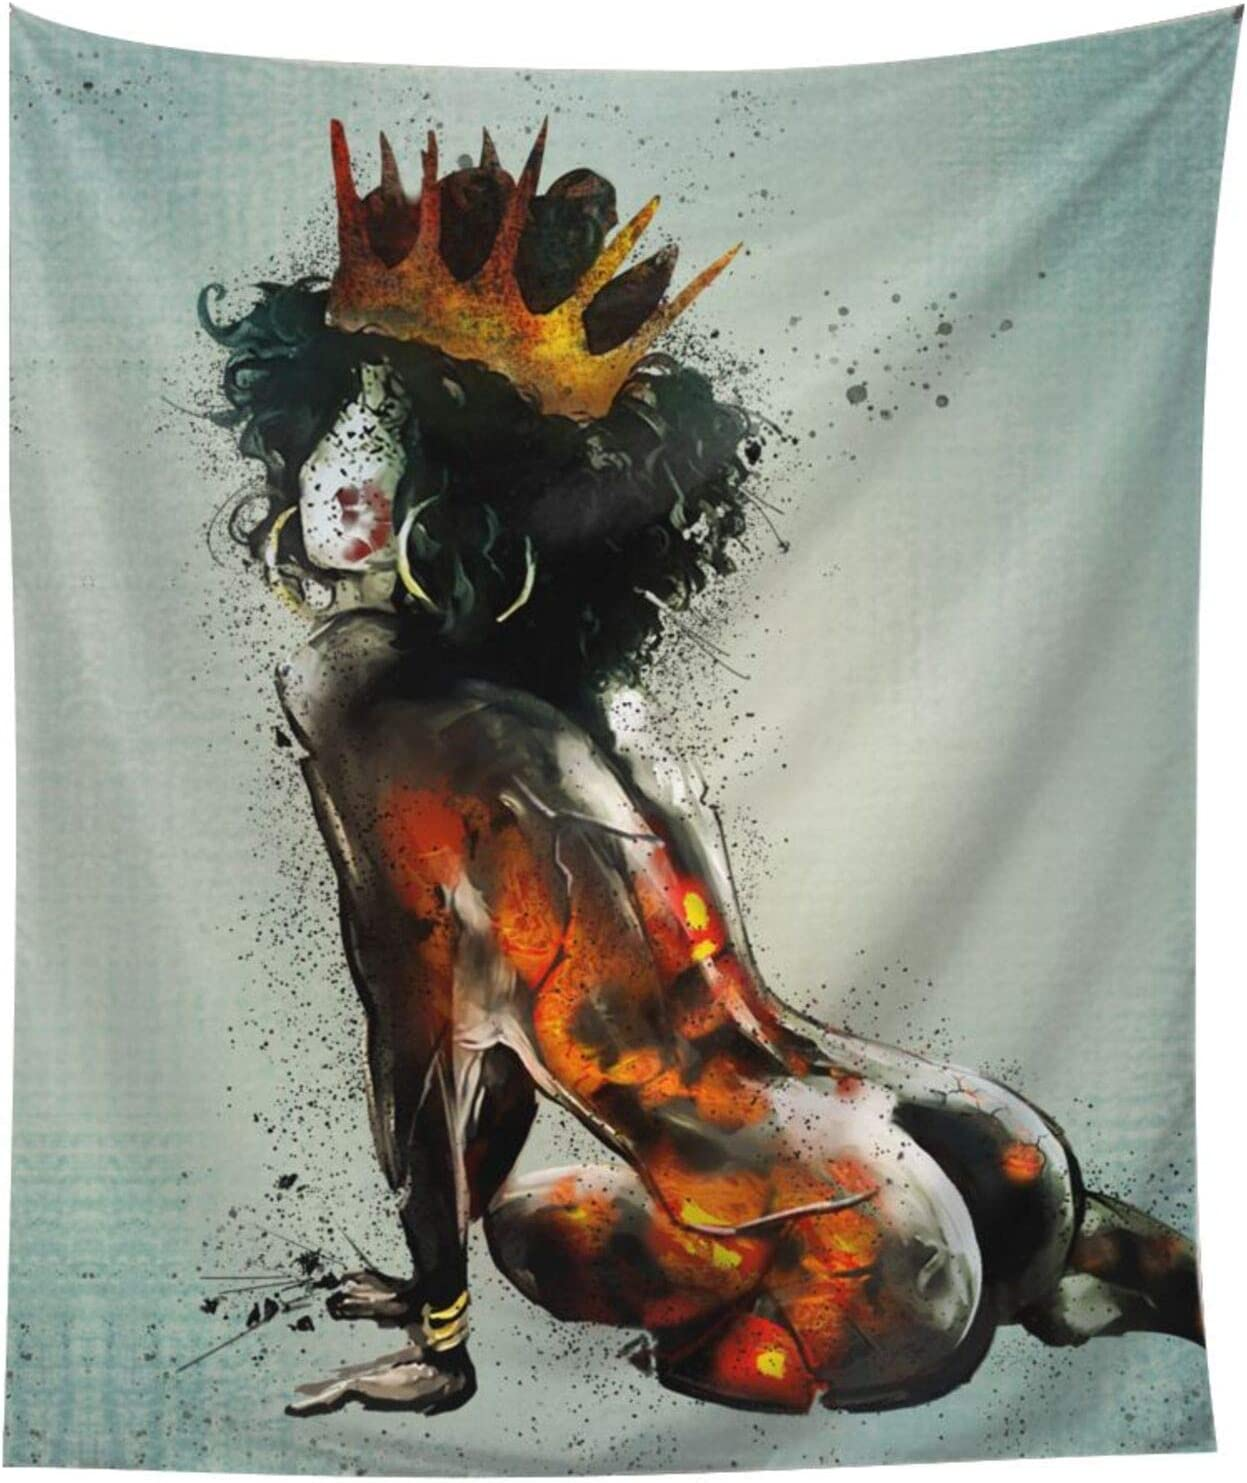 AKUROOU African American Girl with Crown Tapestry Queen Wall Hanging Black Women Tapestry Curtains for Bedroom Home Dorm Decor 60 x 51 inches